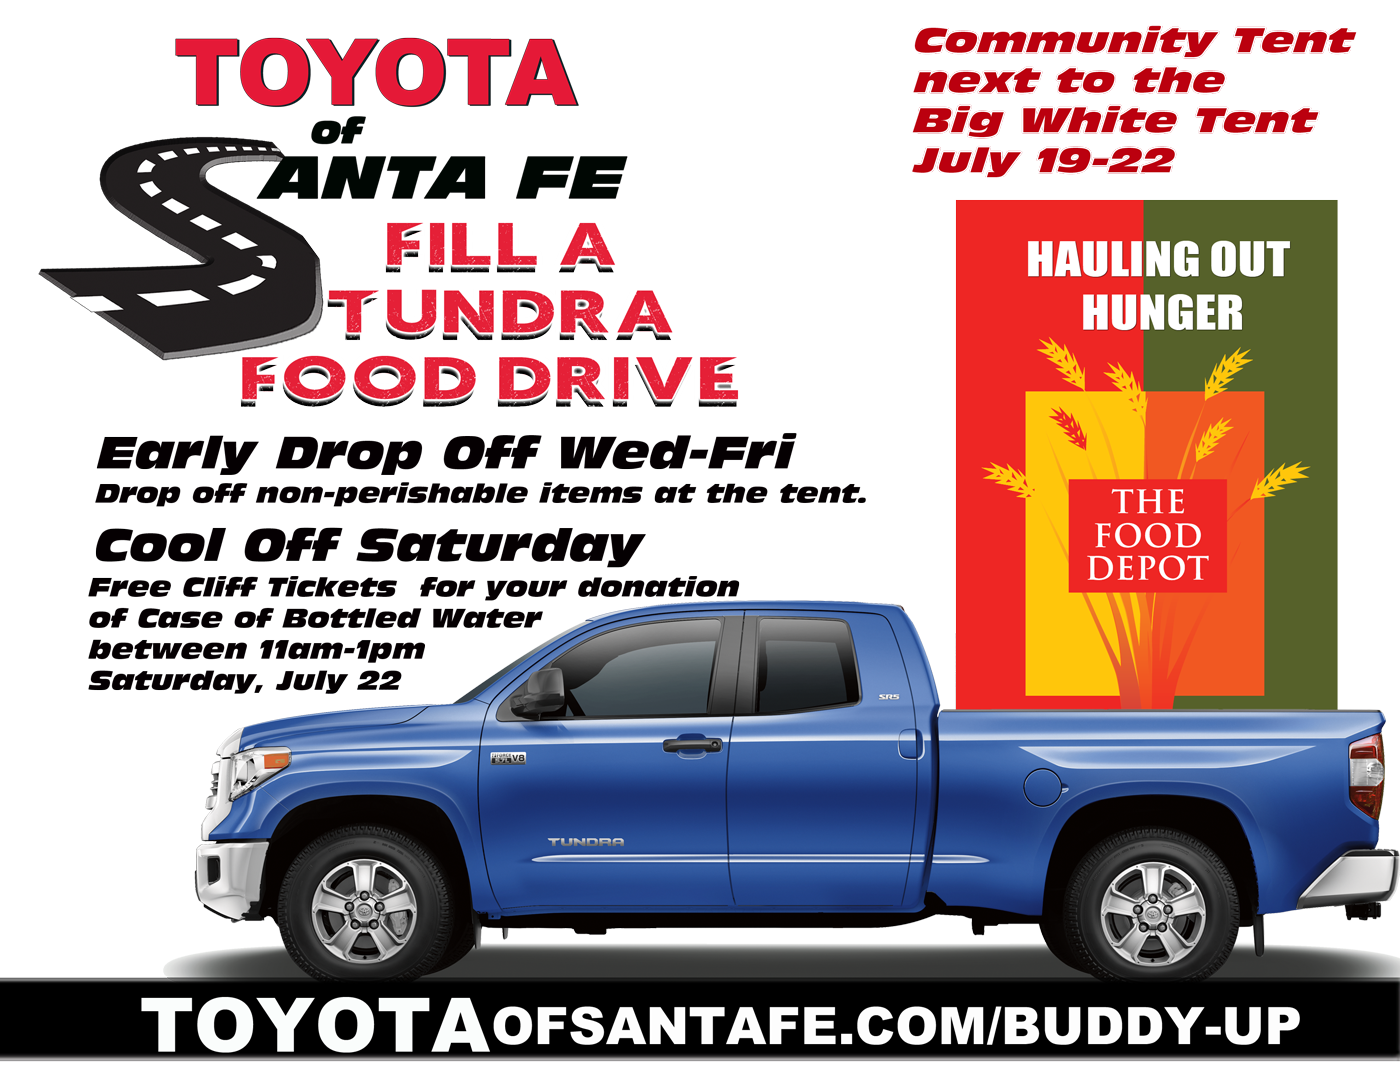 Get Cliff Tickets for Donating a Case of Bottled Water on Saturday July 22 during Fill A Tundra Food Drive